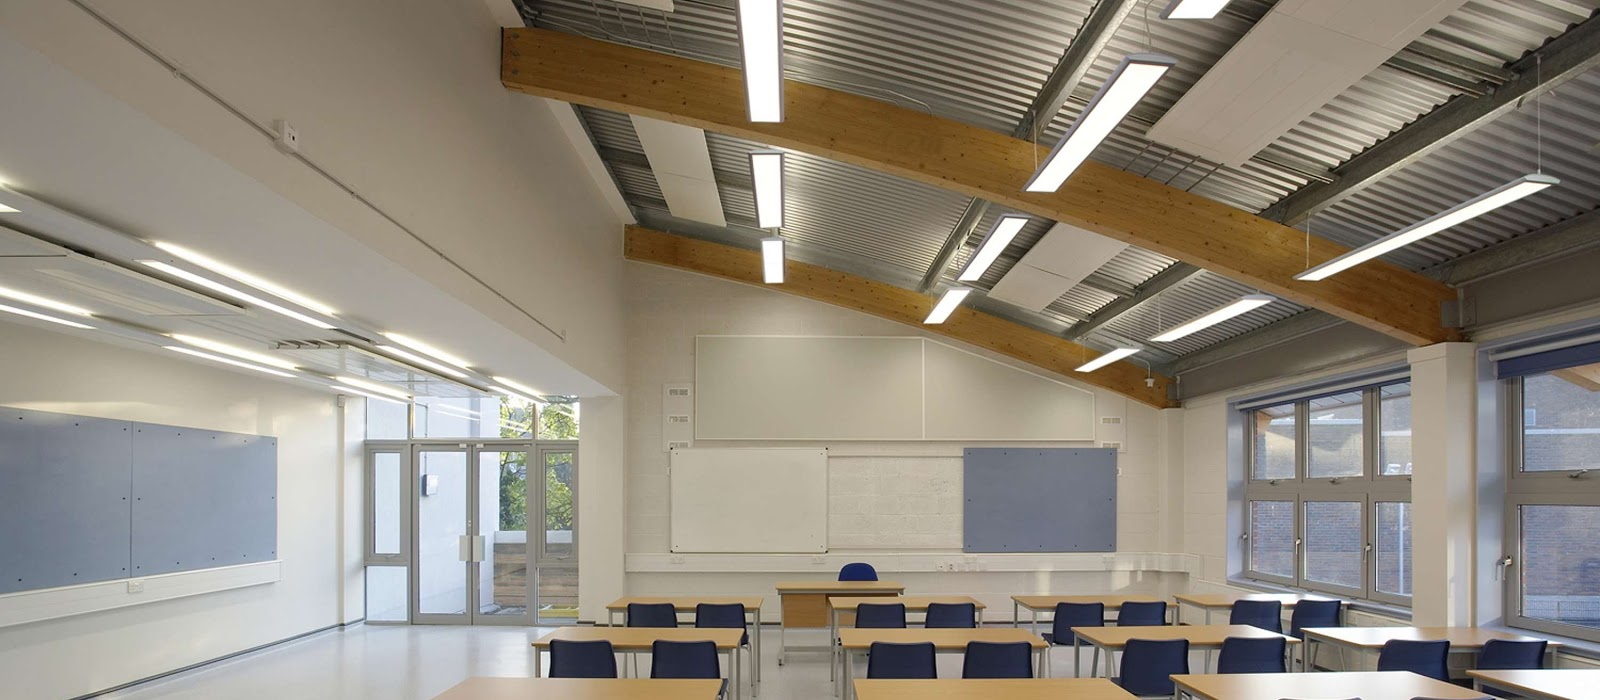 Electrical Installations In West London | School Electrical Contractors | Westlon Electrical Contractors Ltd